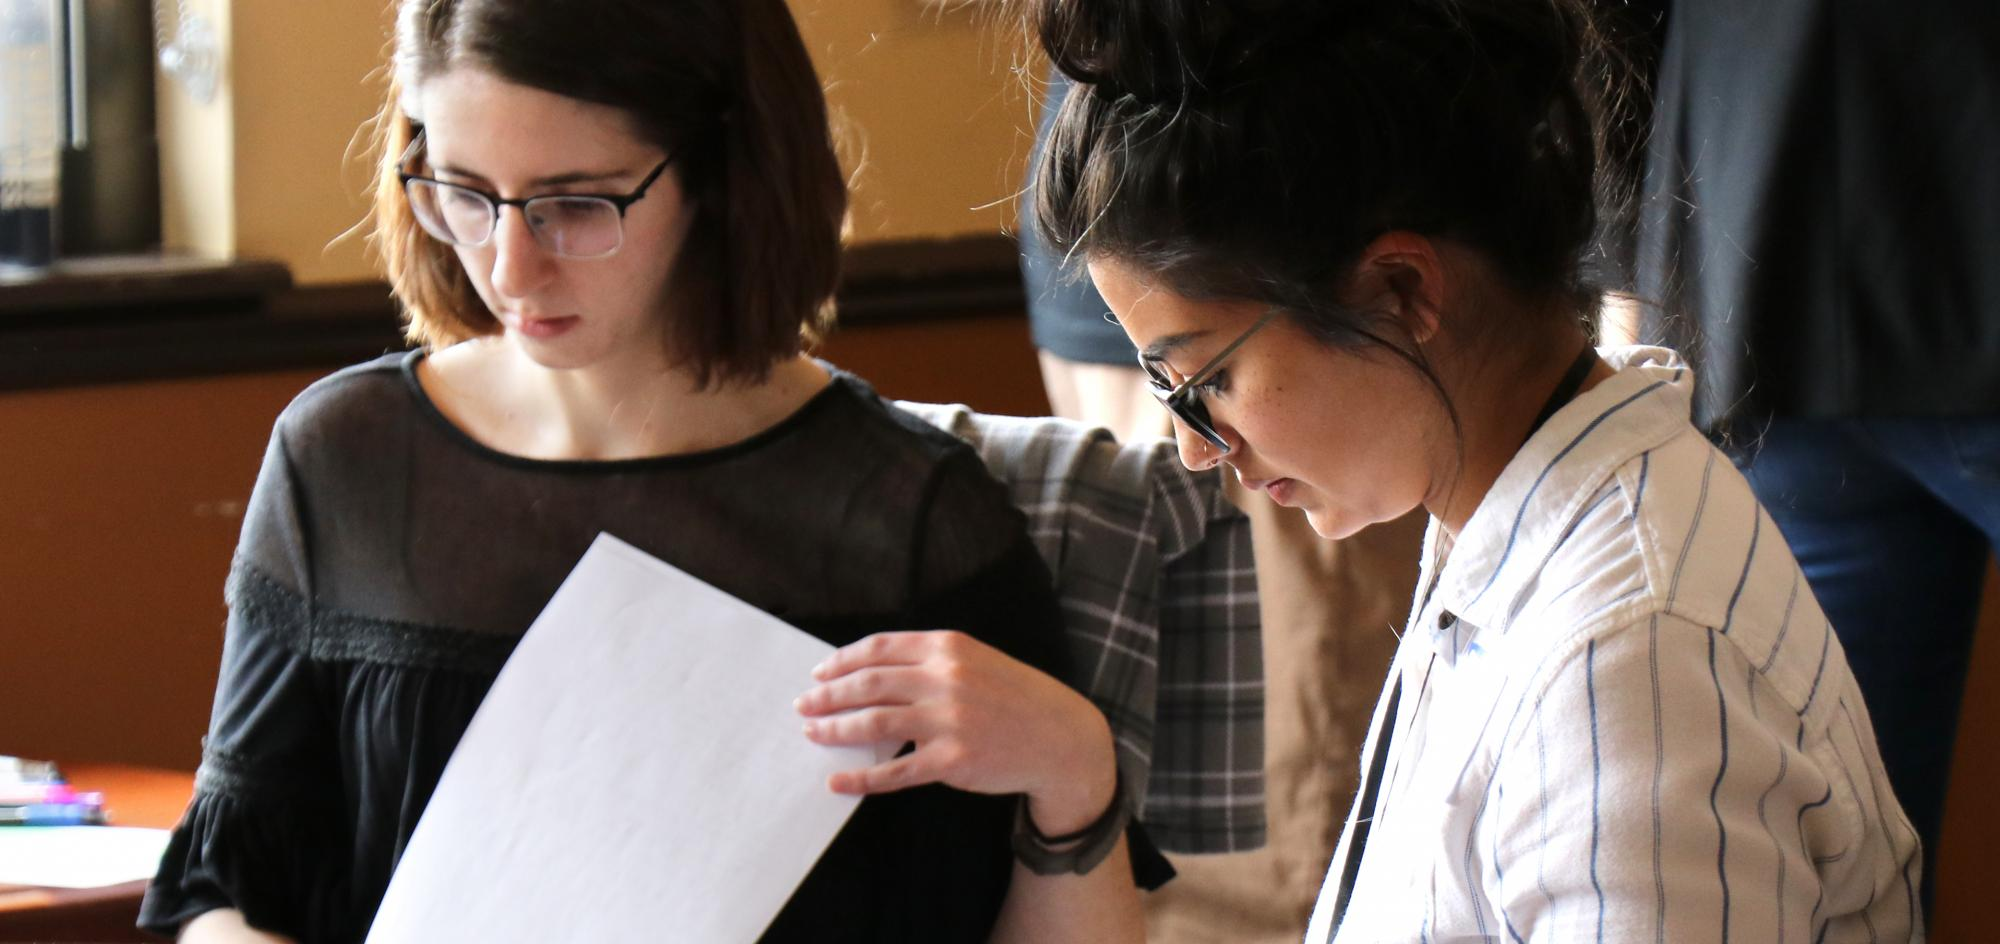 Students reviewing papers